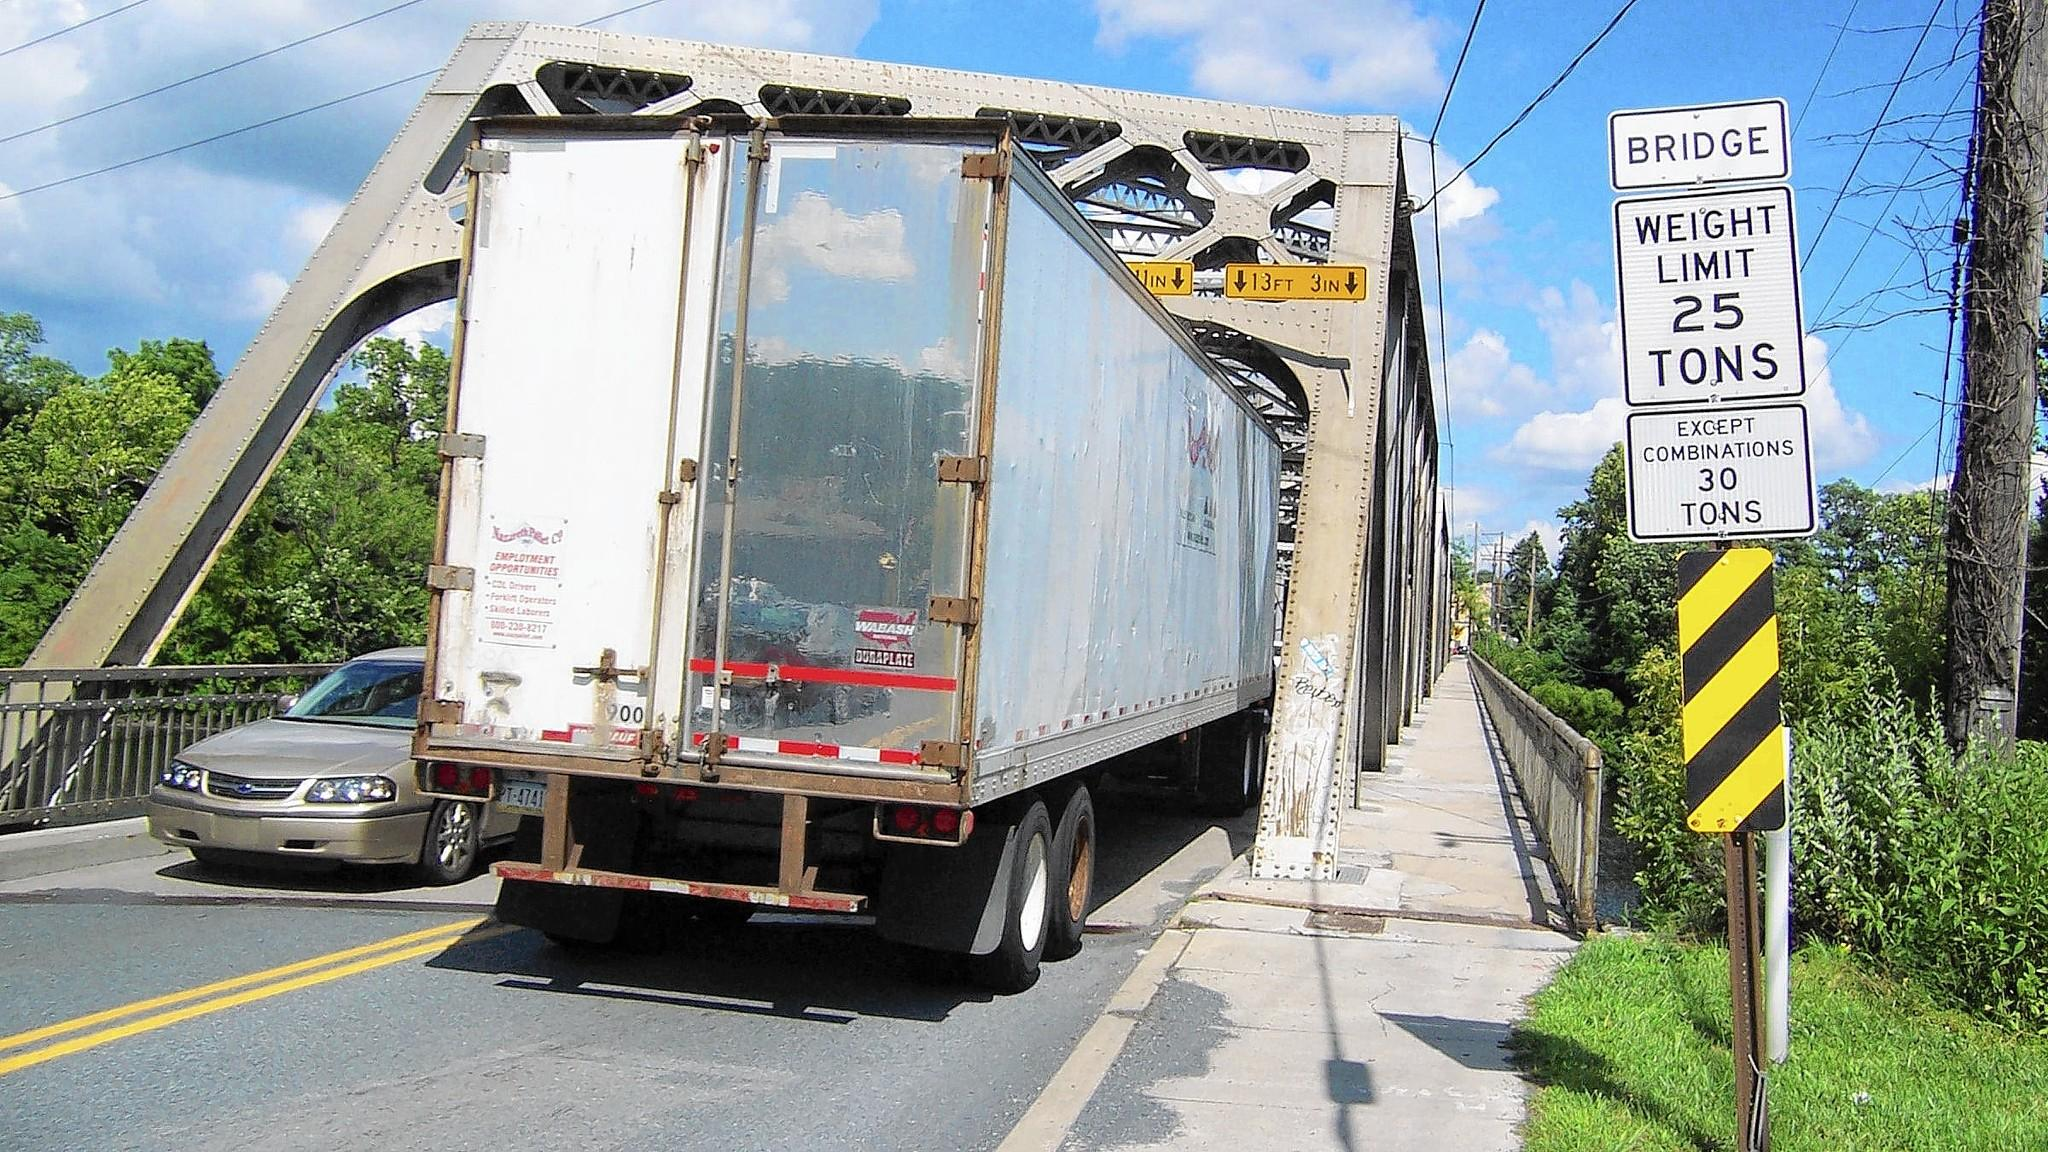 It's a tight fit, but tractor-trailers can, and do, squeeze across the weight-restricted Cementon-Northampton Bridge. The real concern is the weight of large trucks crossing the structurally deficient span.